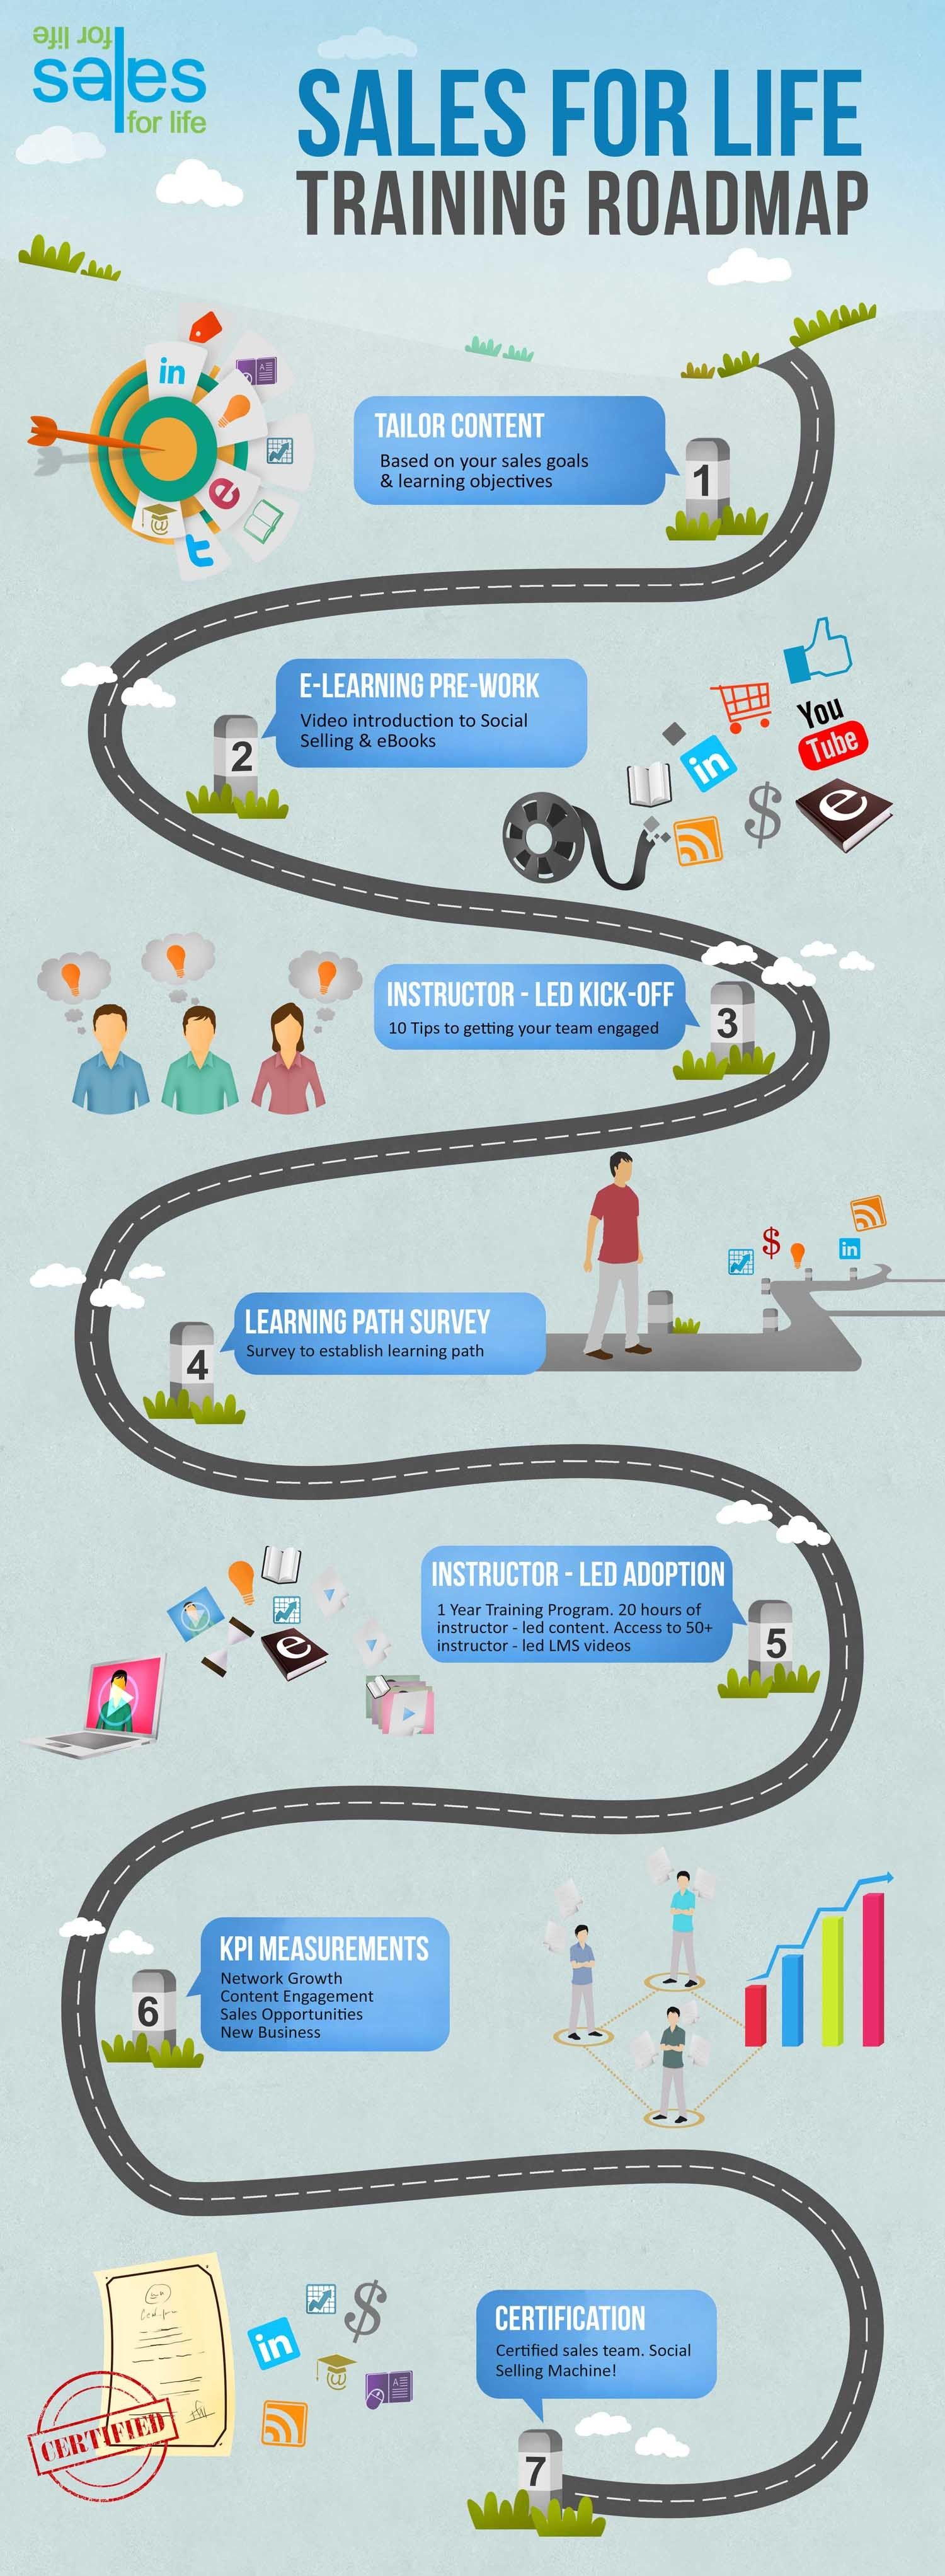 Training roadmap infographic infographic sales pinterest training roadmap infographic infographic 1betcityfo Image collections